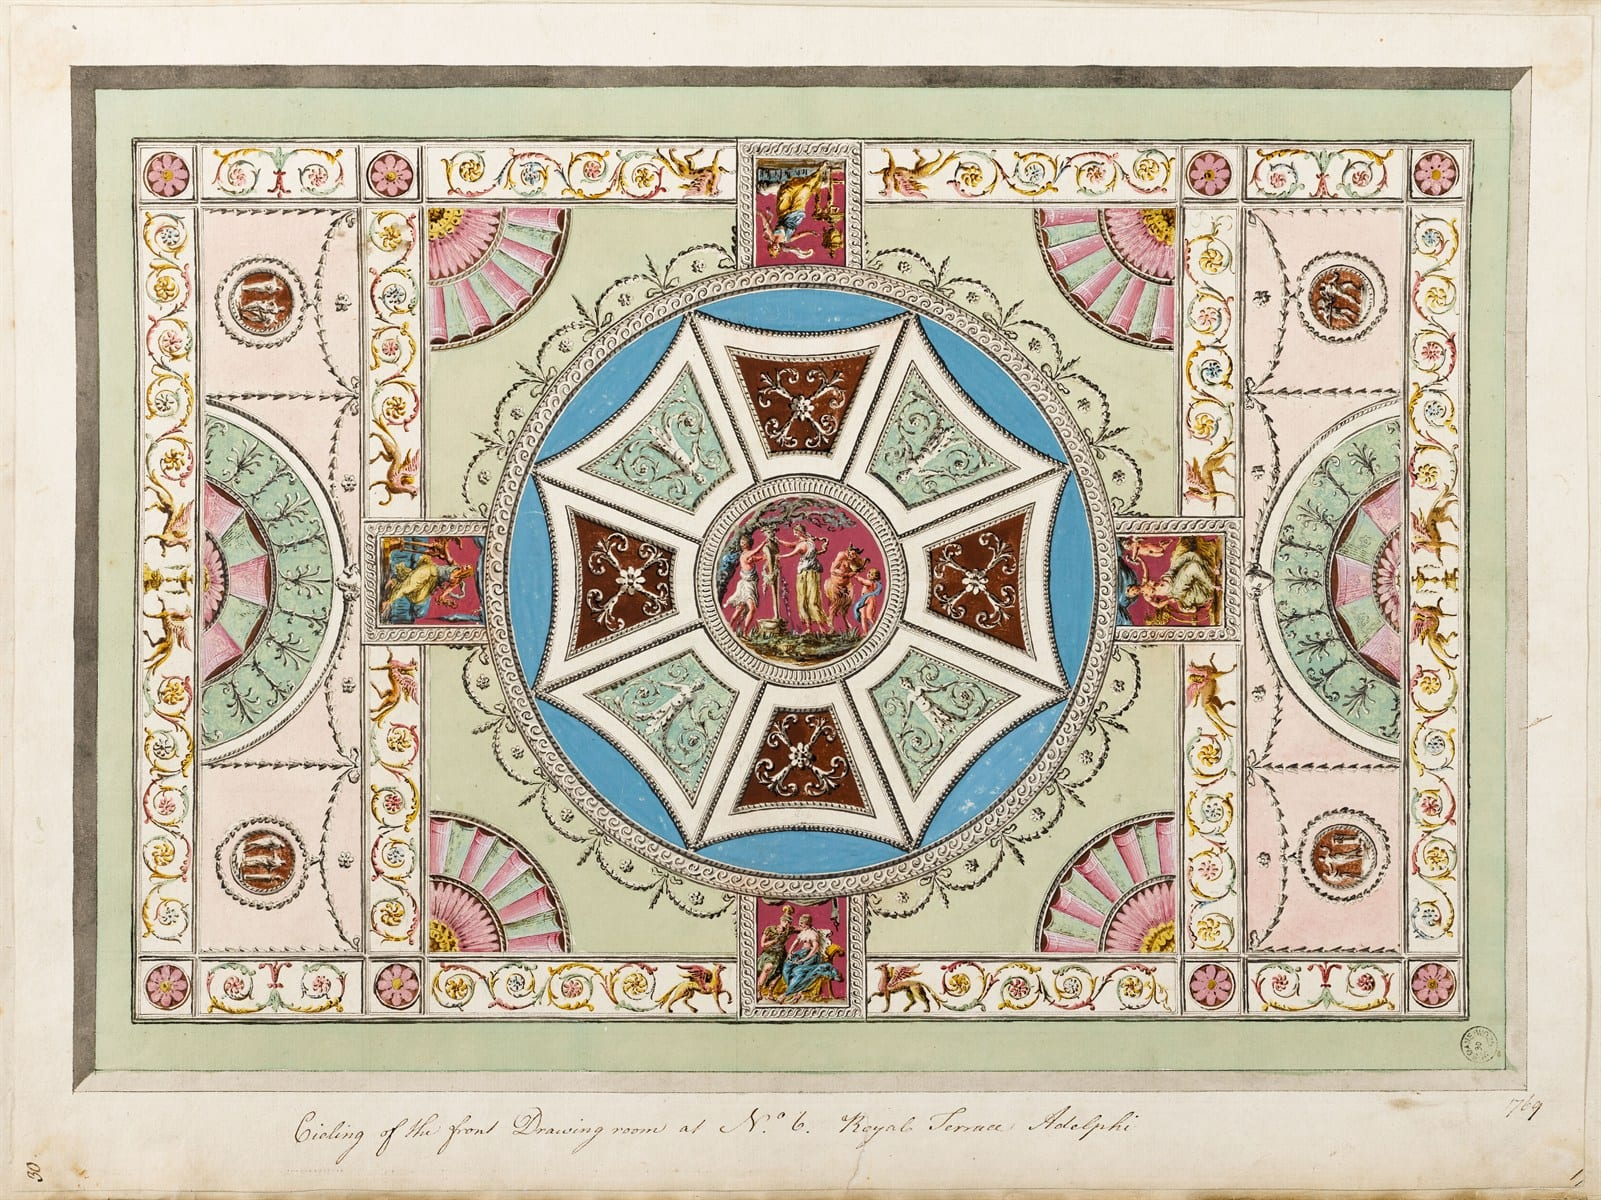 8 Adam design for the front drawing-room ceiling in David Garrick's house. Sir John Soane's Museum (Adam vol. 13/30)